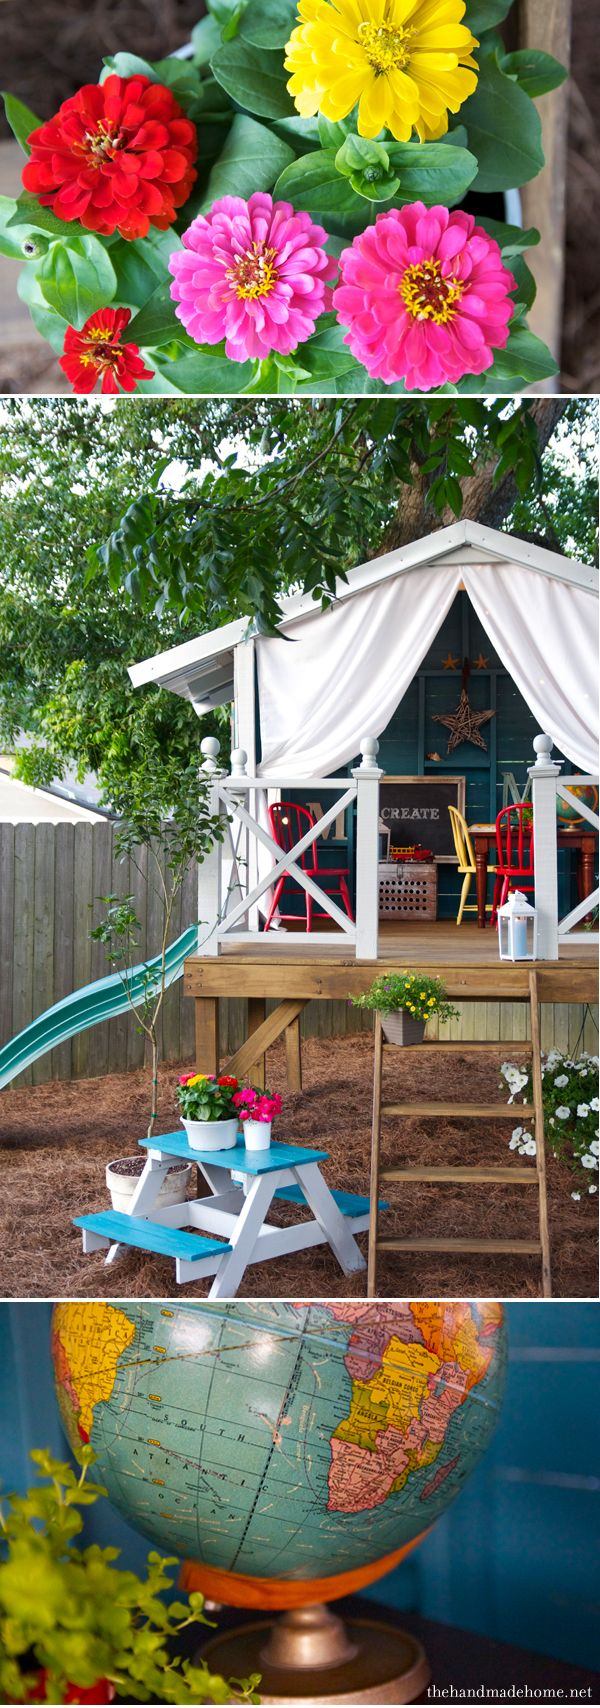 handmade_treehouse  very cool: Handmade Treehouse, Backyard Forts, Kids Trees Houses, Backyard Hideaway, Funky Ideas, Handmade Home, Handmade Hideaway, Diy Treehouse For Kids, Plays Houses